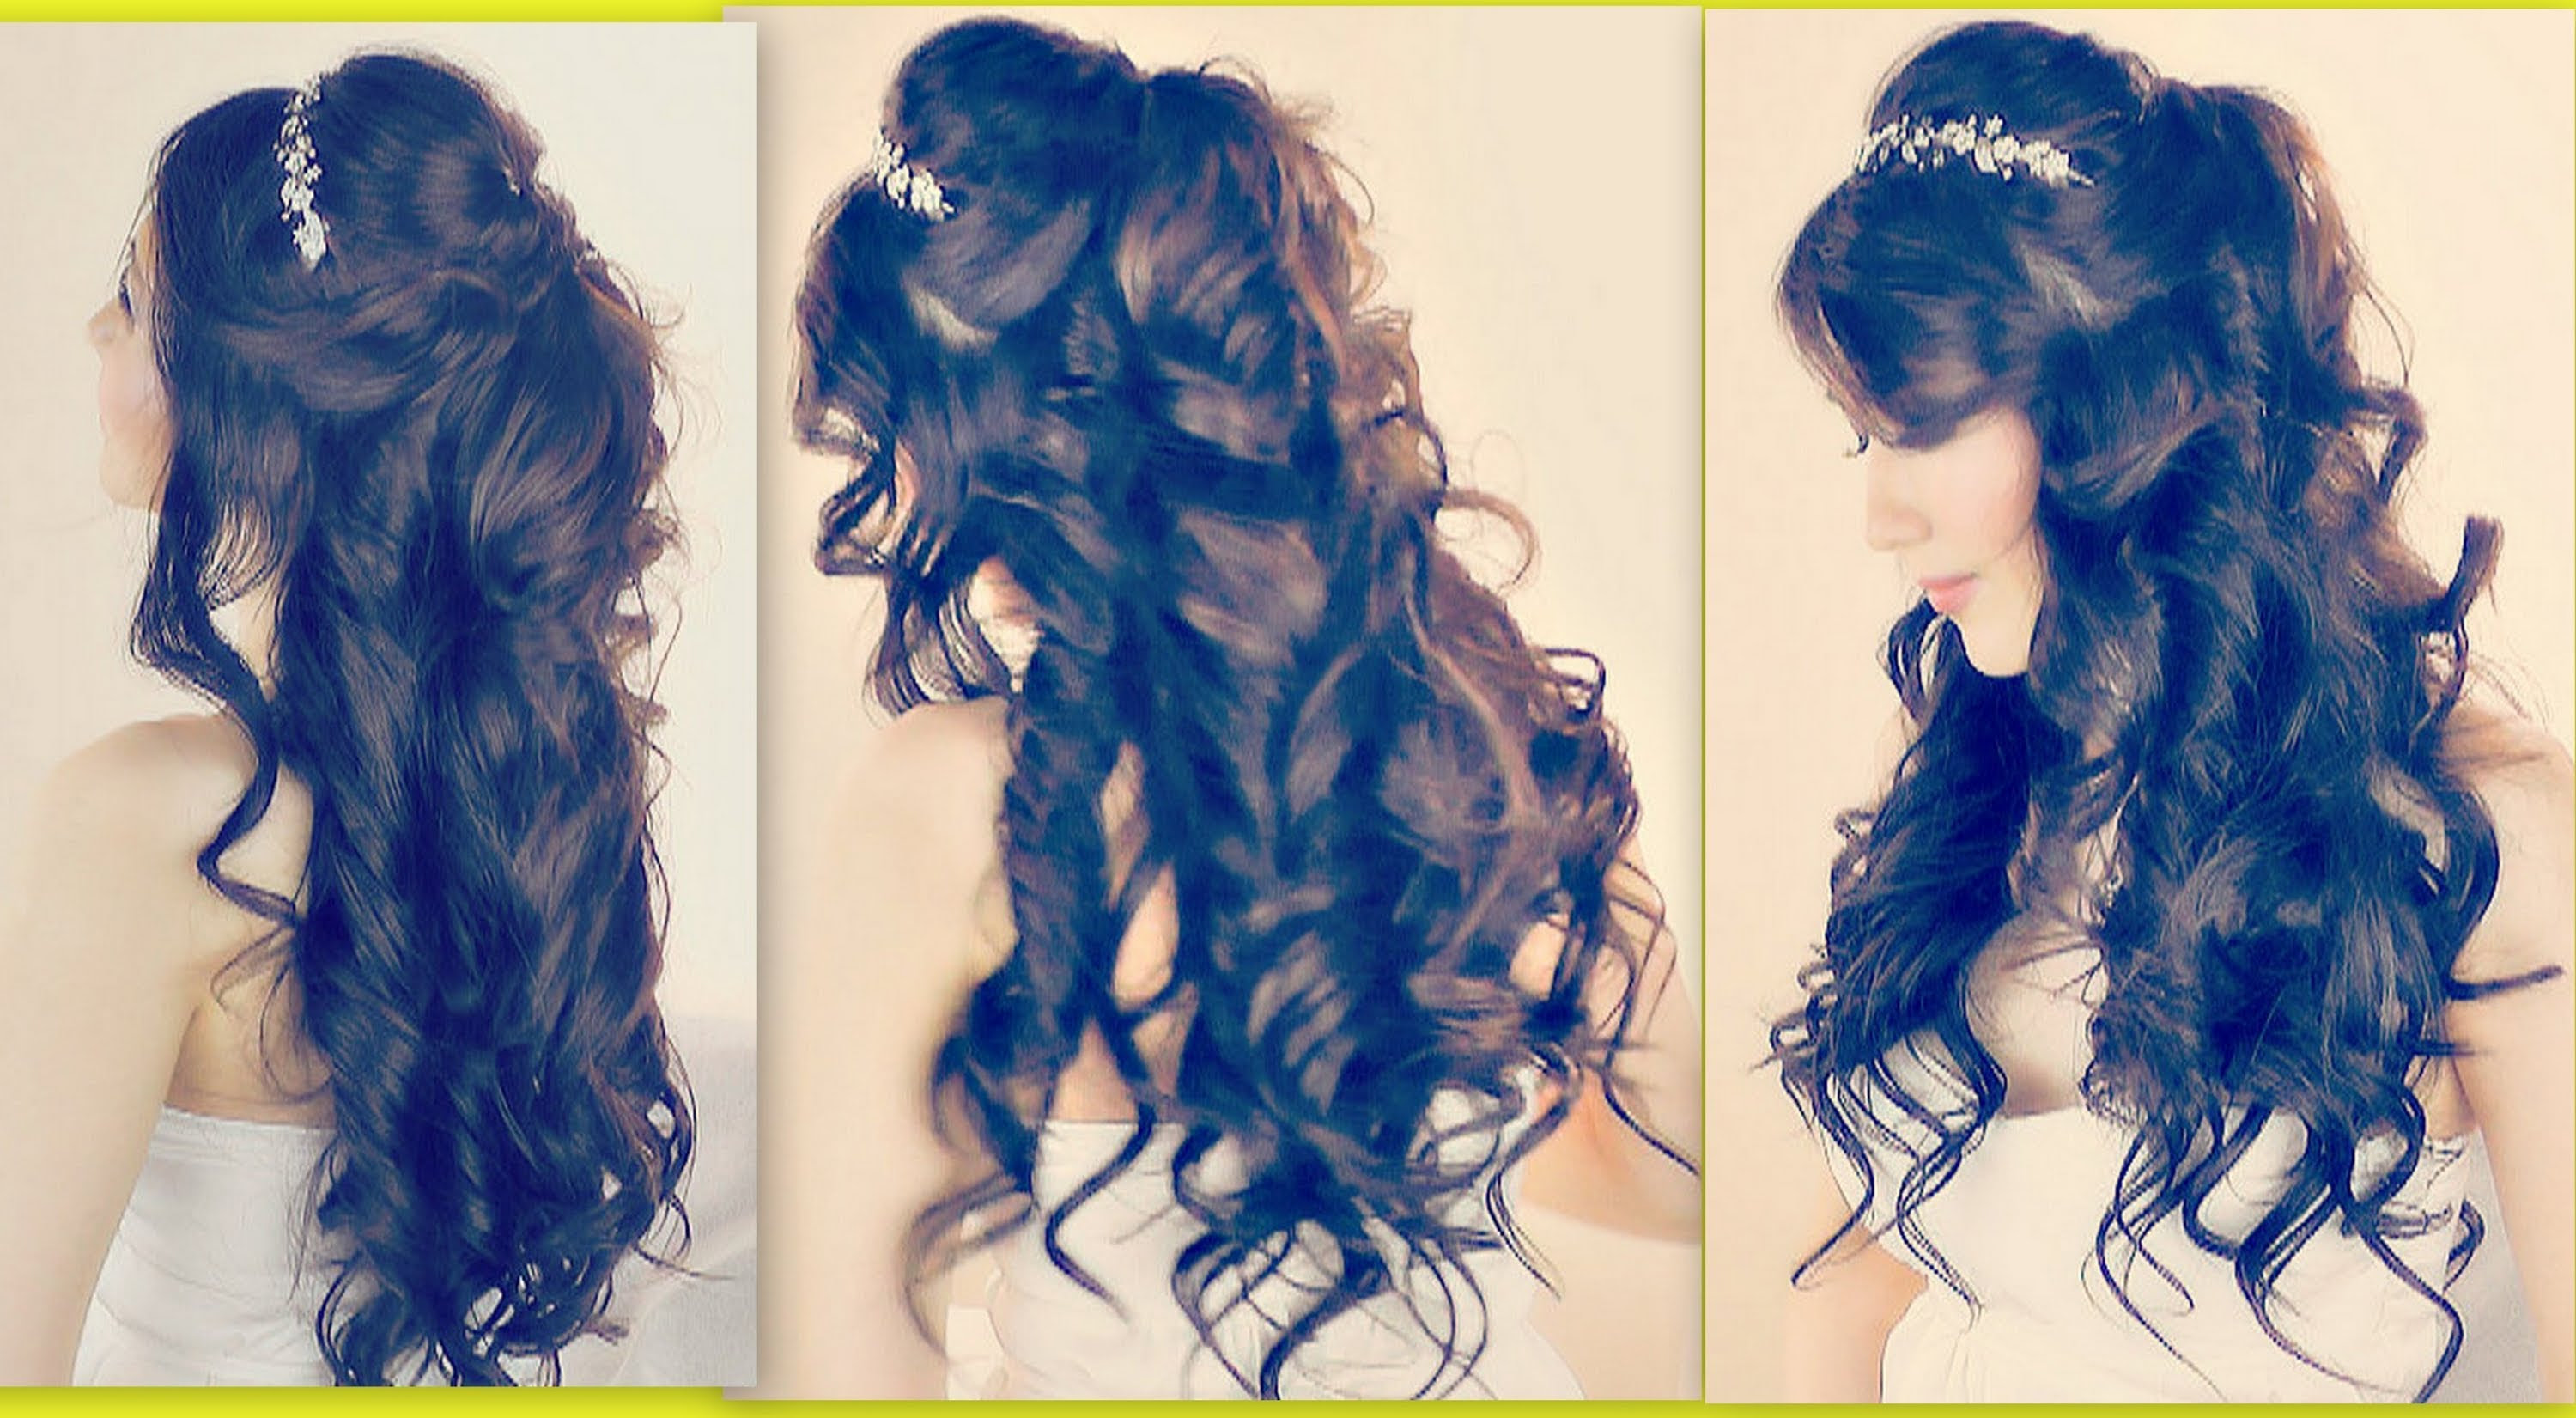 Hairstyles For Prom For Medium Length Hair Half Up HalfFuneral